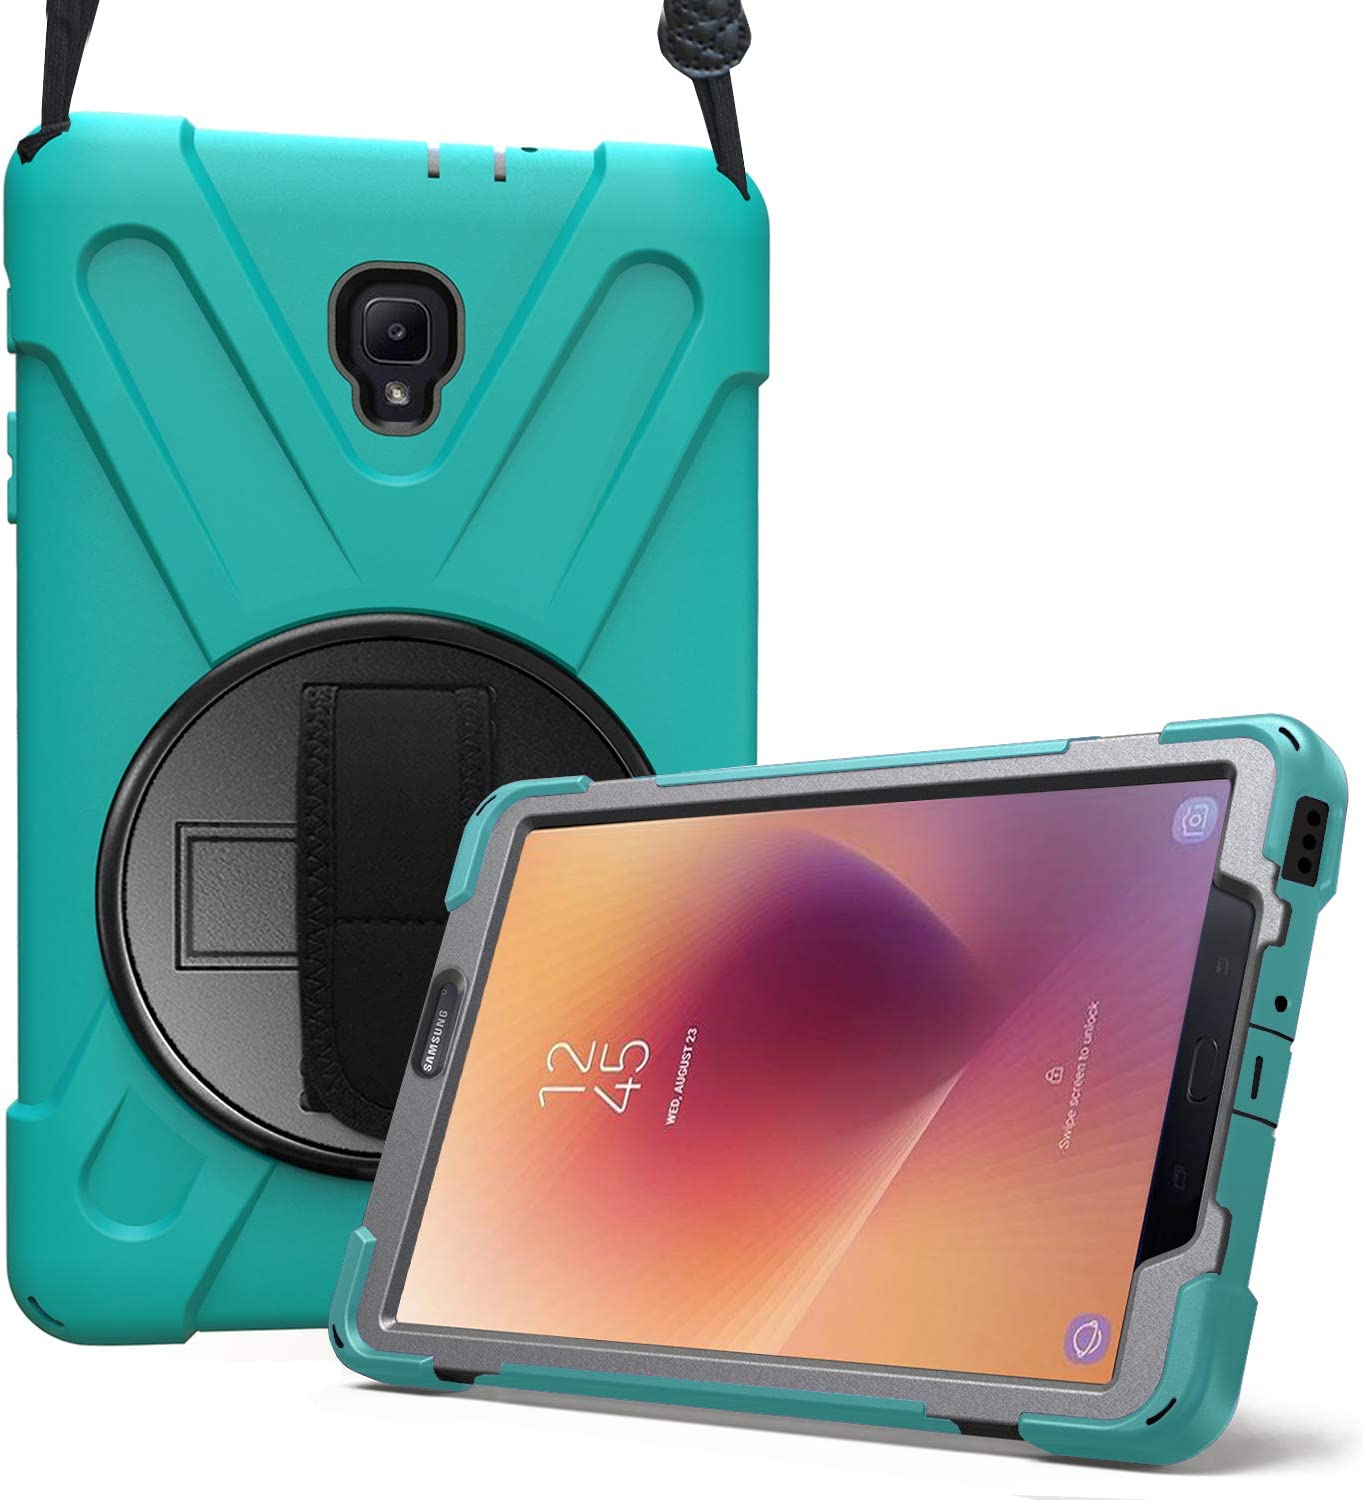 ProCase Galaxy Tab A 8.0 2017 T380 T385 Case, Rugged Heavy Duty Shockproof Rotating Kickstand Protective Cover Case for Galaxy Tab A Tablet 2017 T380 T385 –Teal